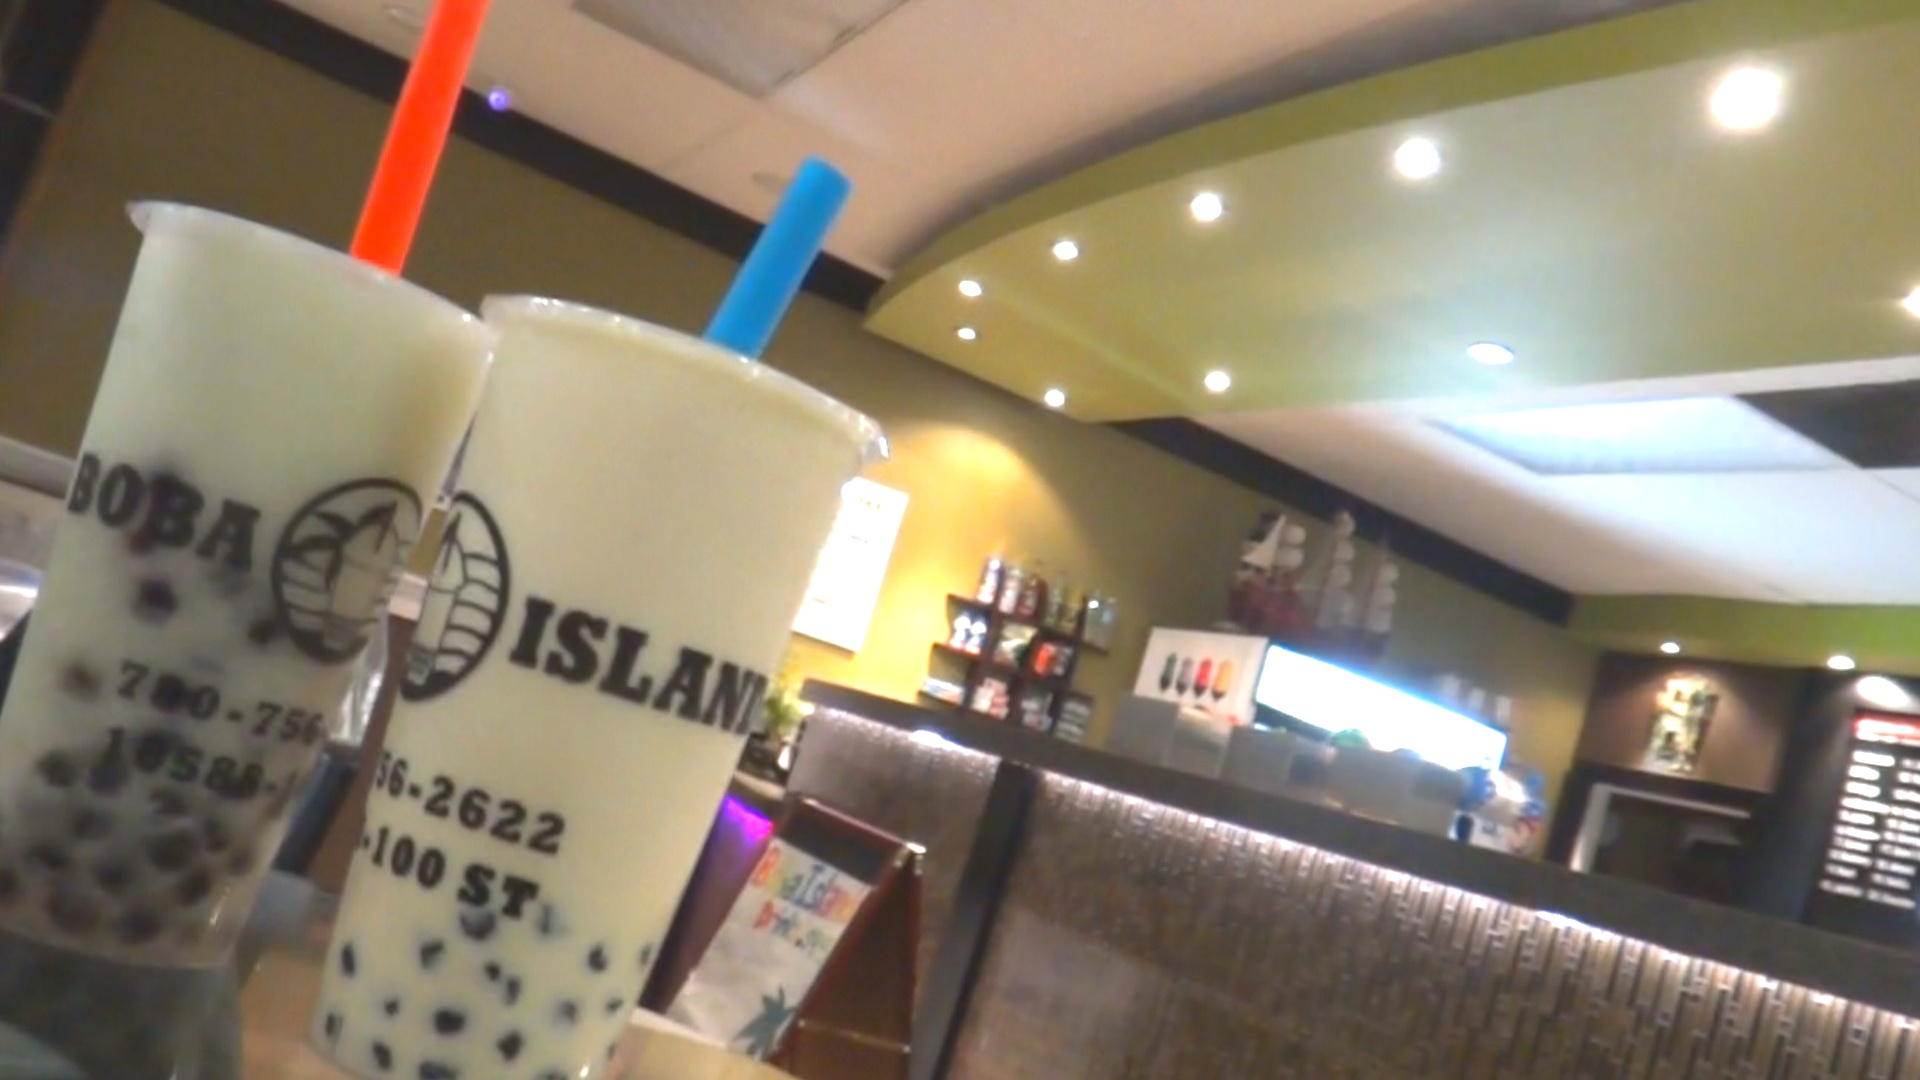 Boba Island Bubble Tea